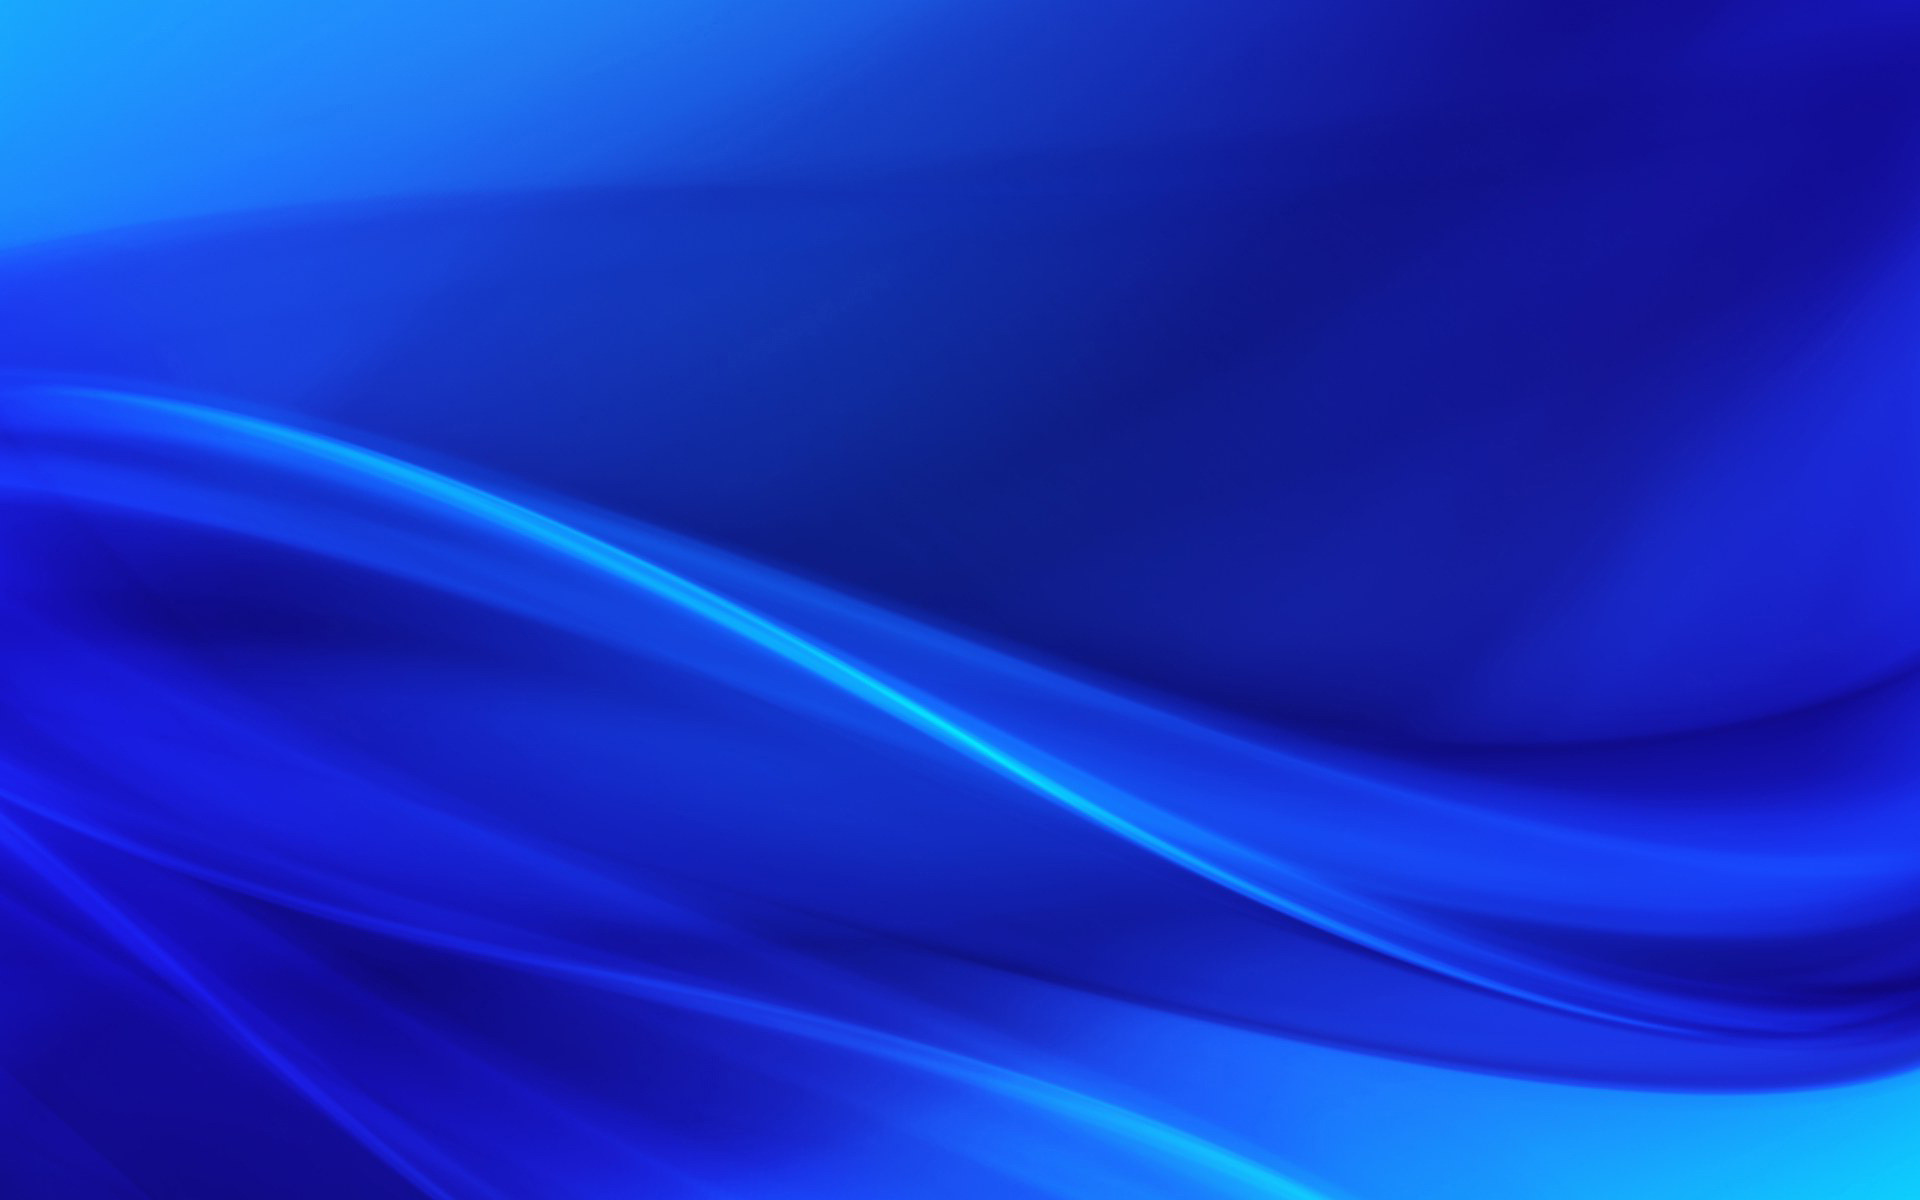 Free Photo  Blue Waves Wallpaper - Abstract  Art  Wave - Free Download